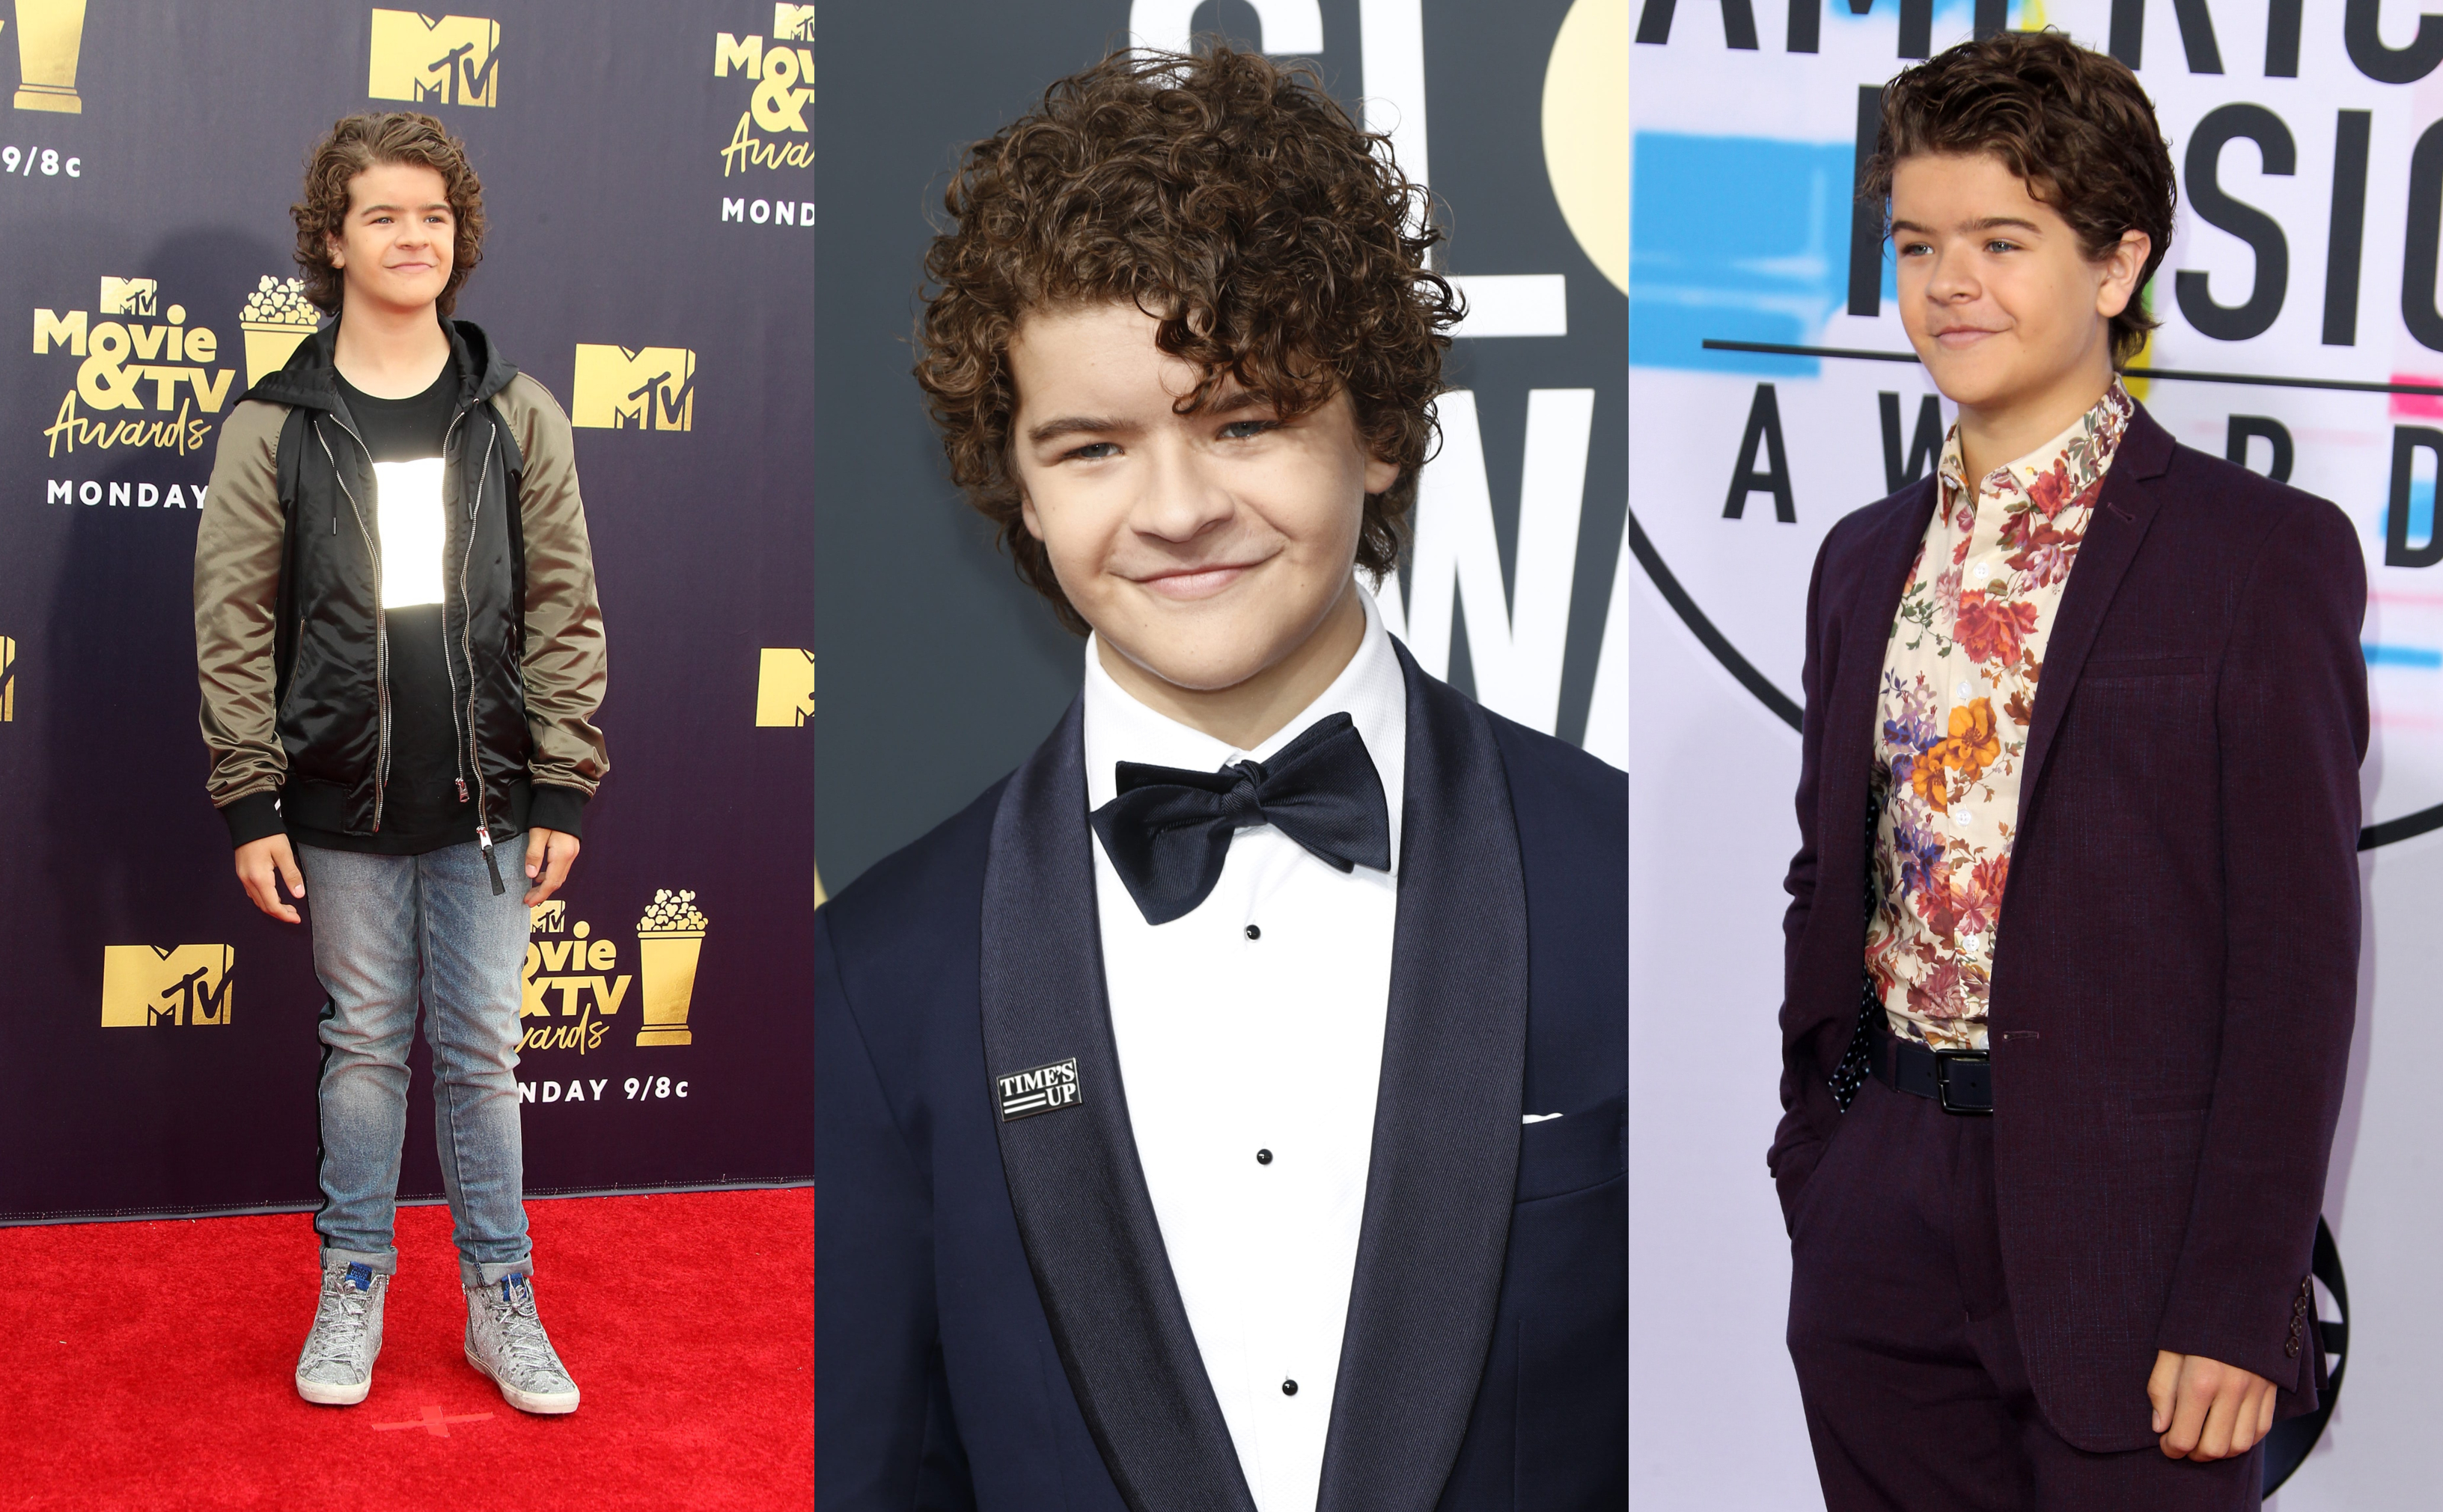 Here's a look back at 10 times Gaten Matarazzo turned the red carpet upside down with his bold floral prints, quirky colorful suits, and his iconic curly mane. (Photo: WENN)